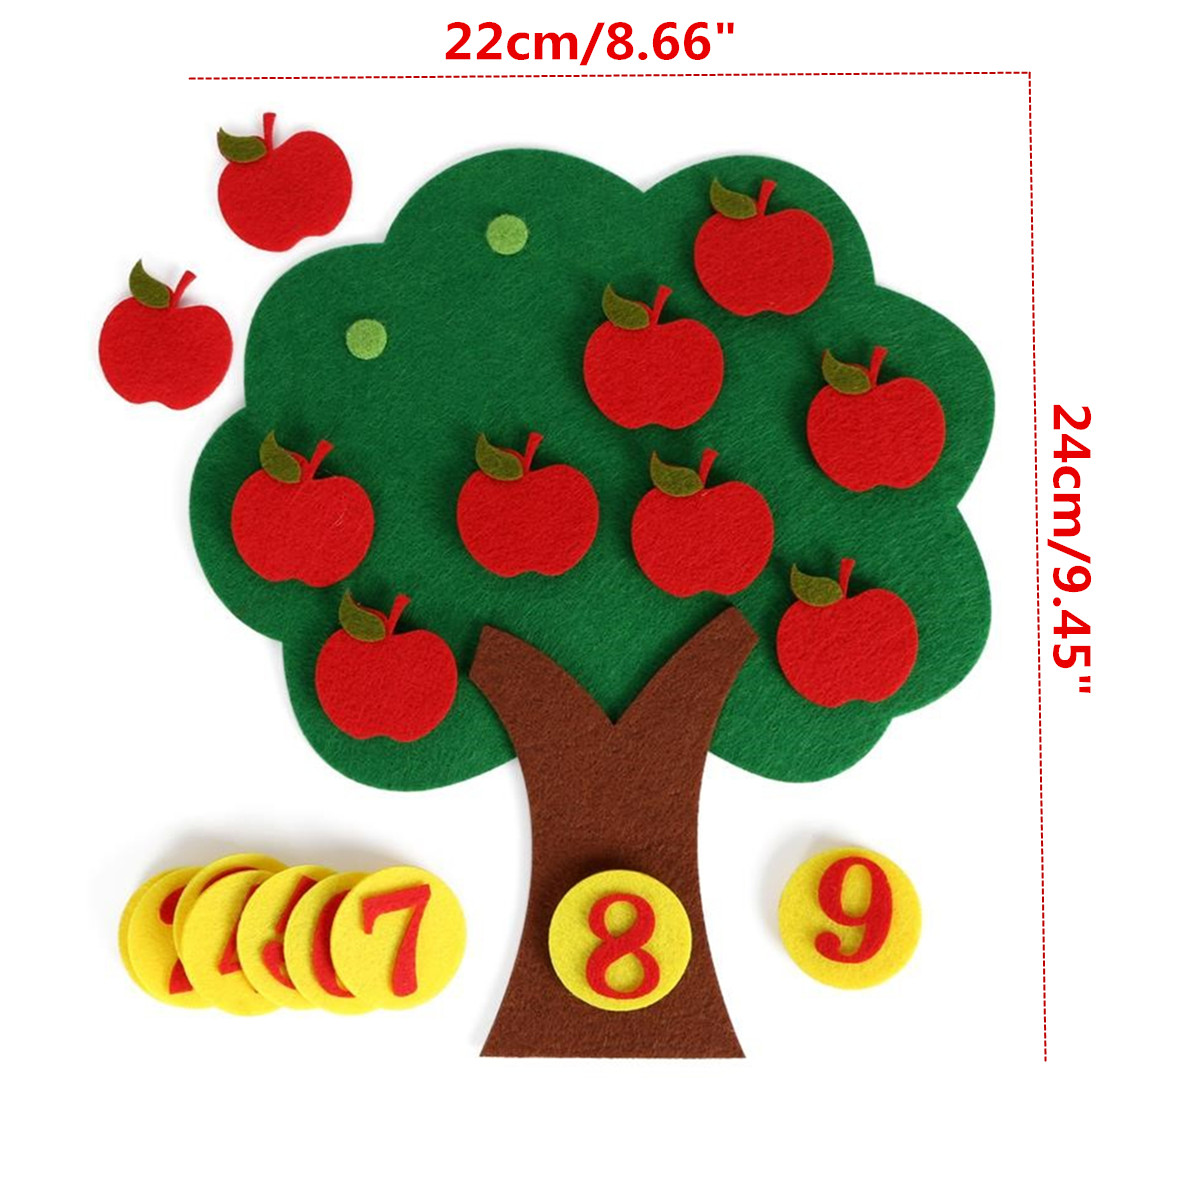 Montessori Teaching Aids App le Trees Math Toys Teaching Kindergarten manual Diy Early Learning Education Toys Digital Math Toy image